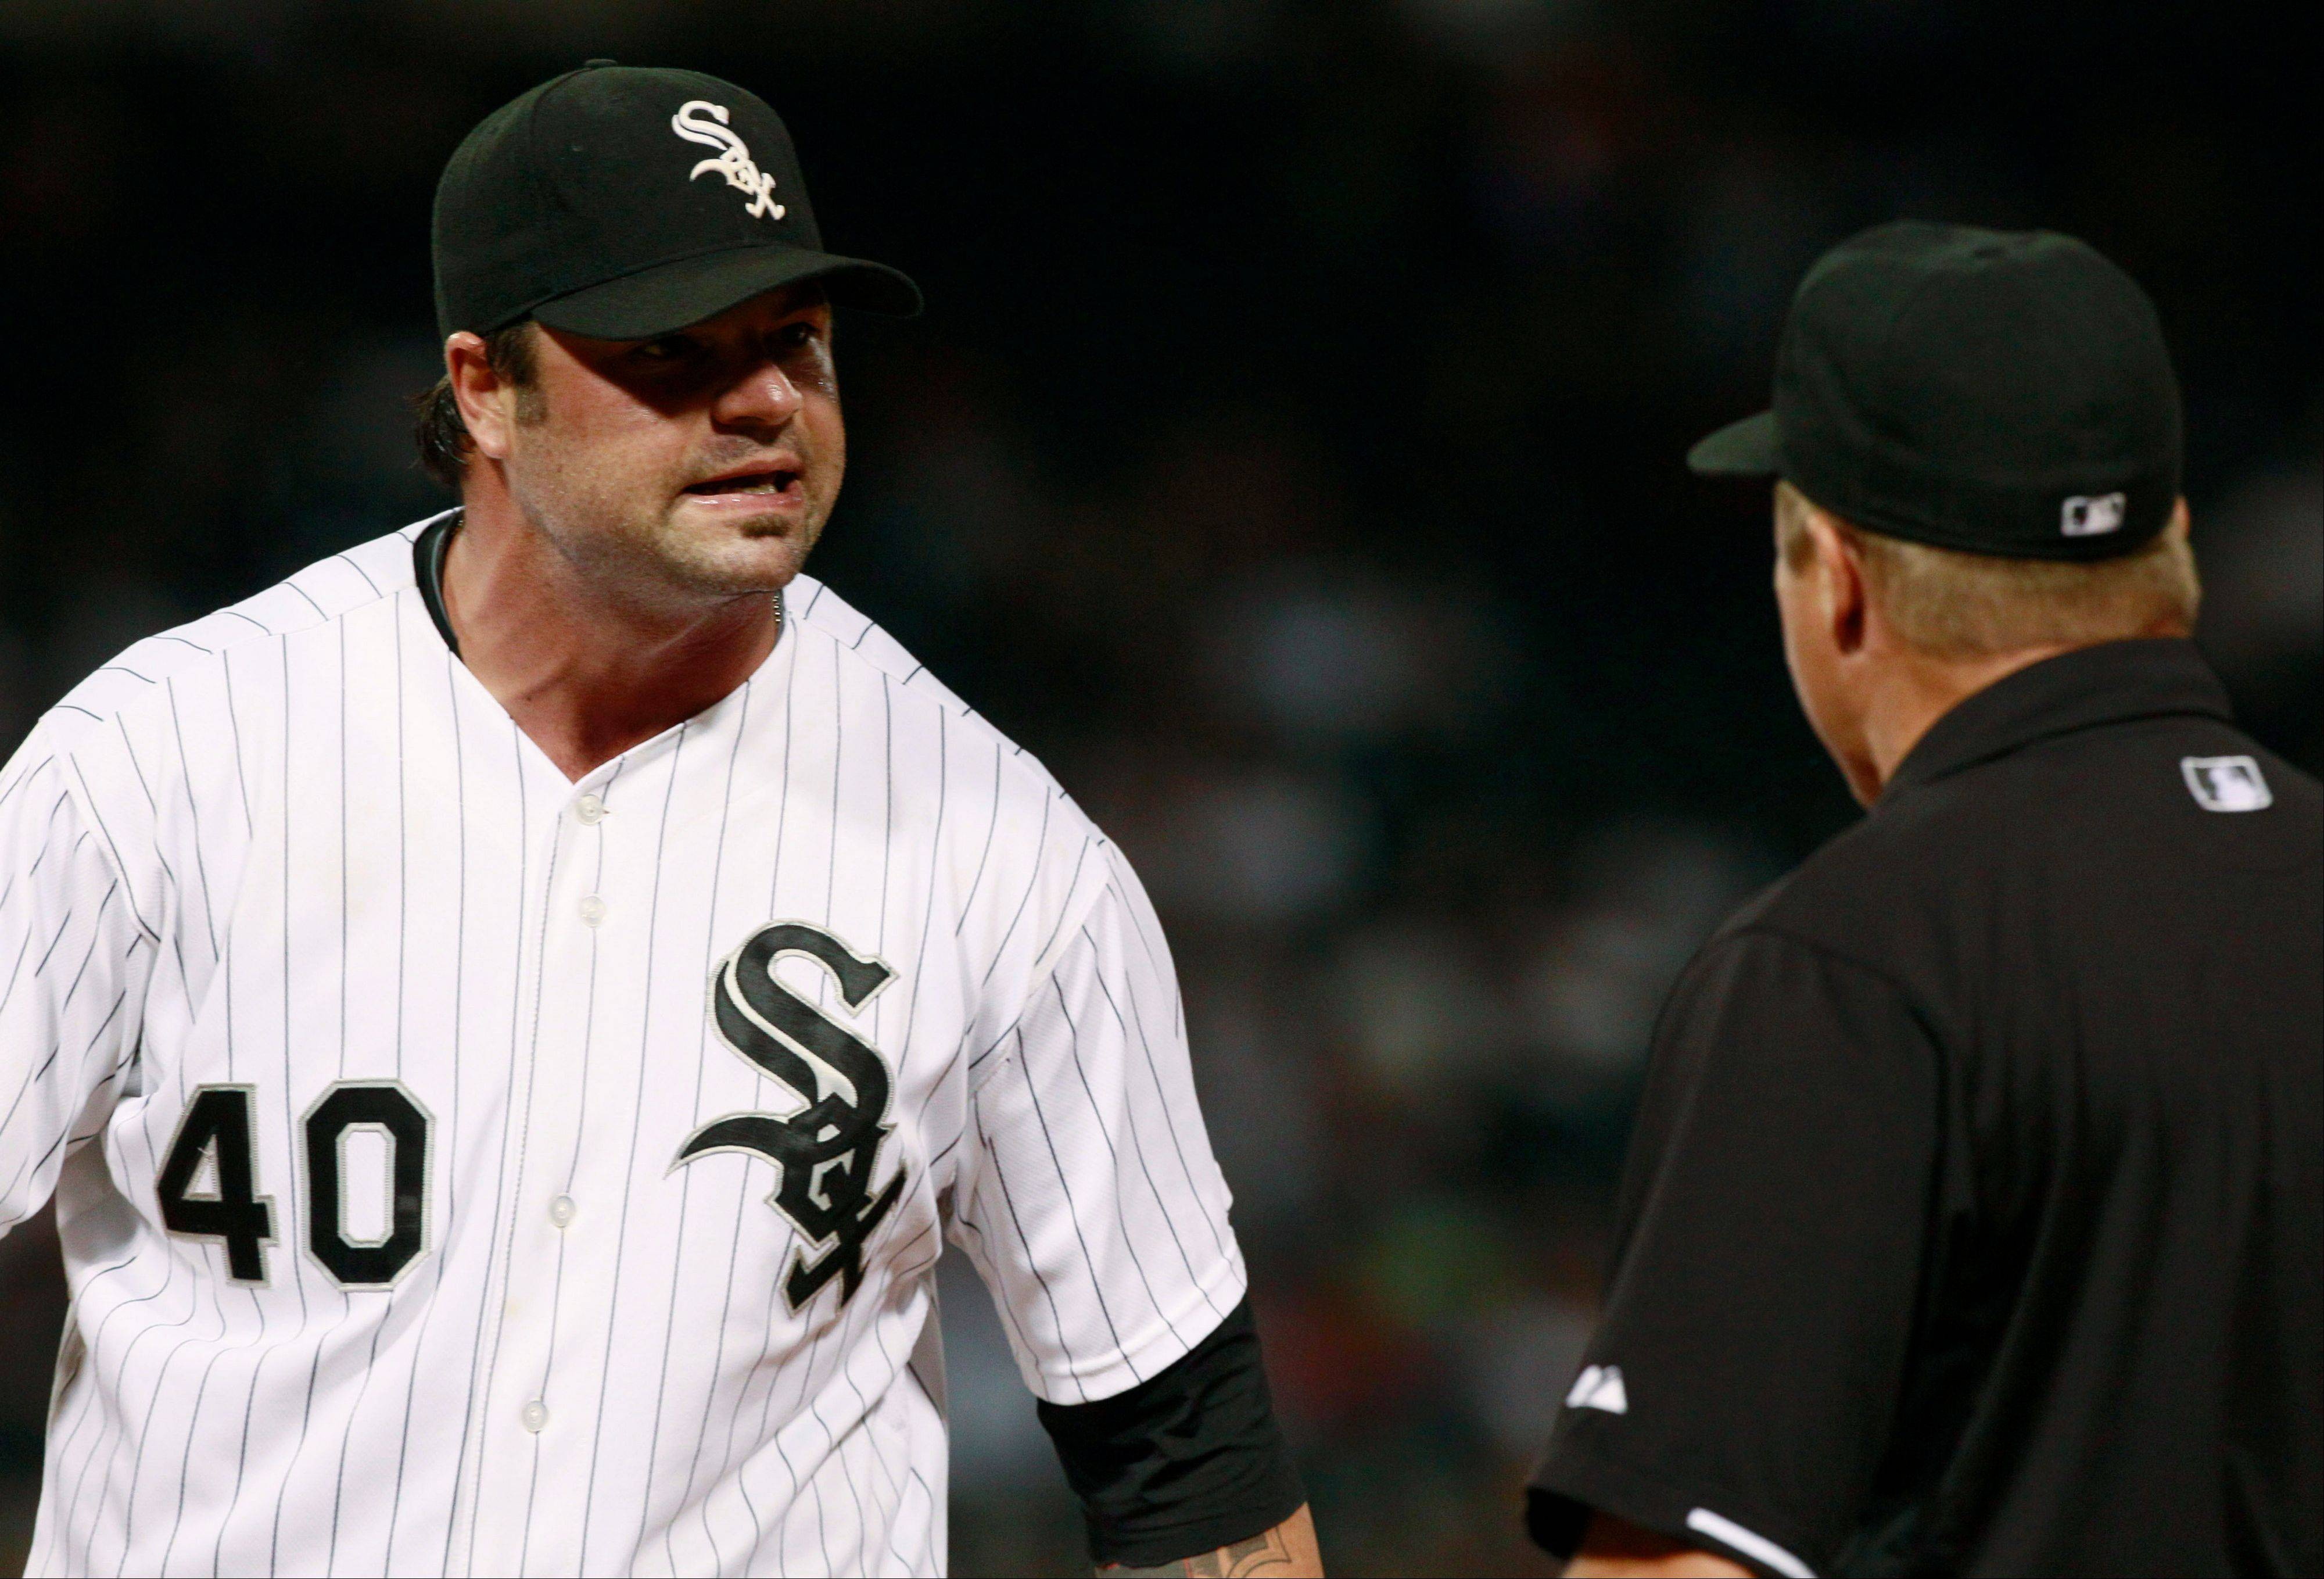 White Sox relief pitcher Brian Bruney argues with first base umpire Marvin Hudson during the seventh inning Wednesday night. Bruney was ejected.